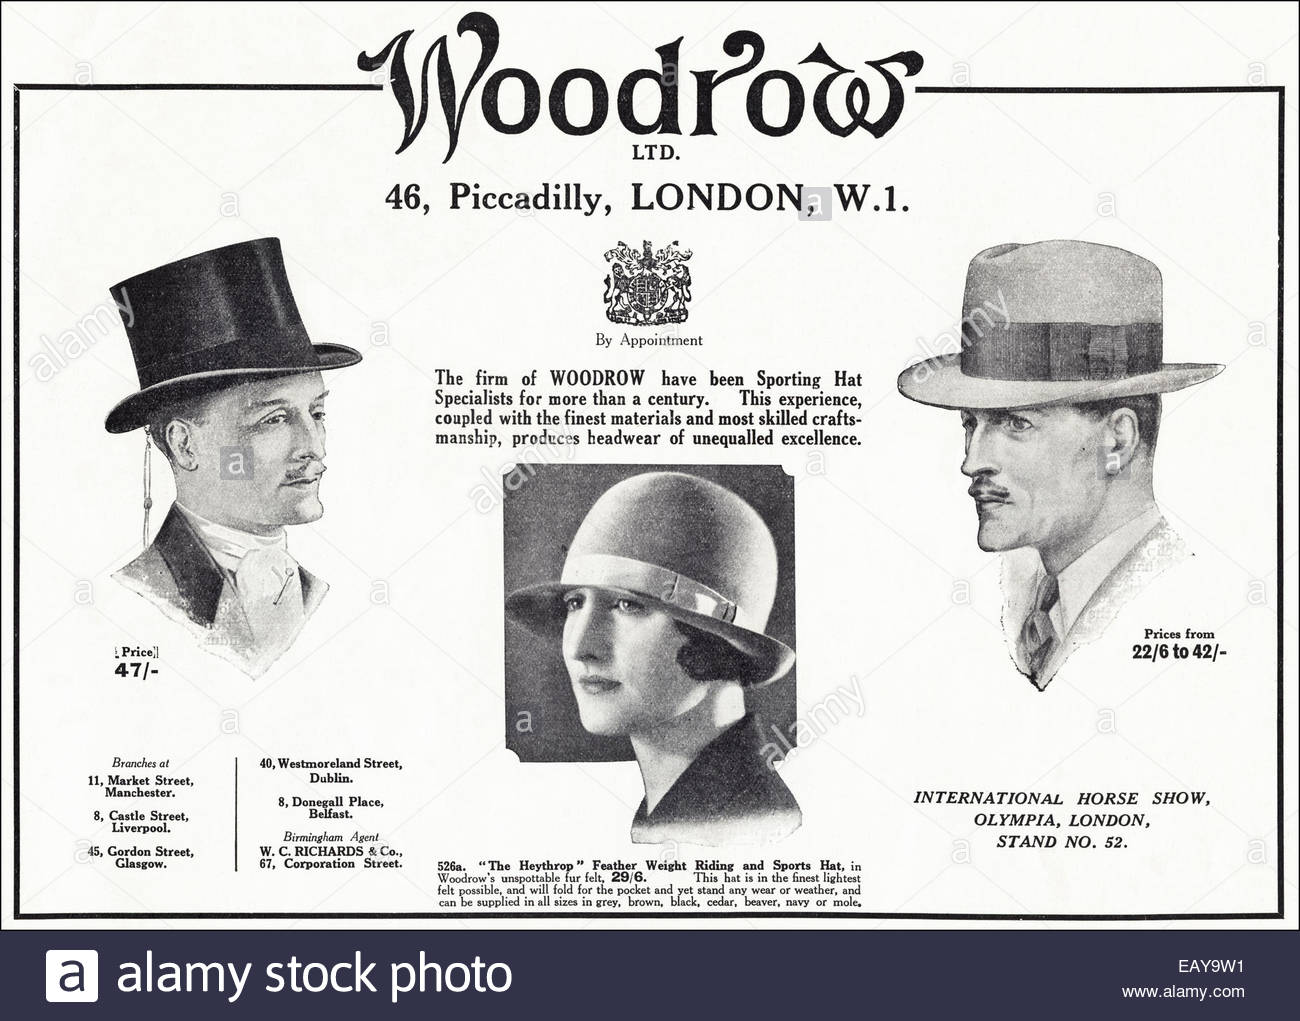 1920s-advertisement-for-woodrow-hat-makers-tailors-of-piccadilly-london-EAY9W1.jpg